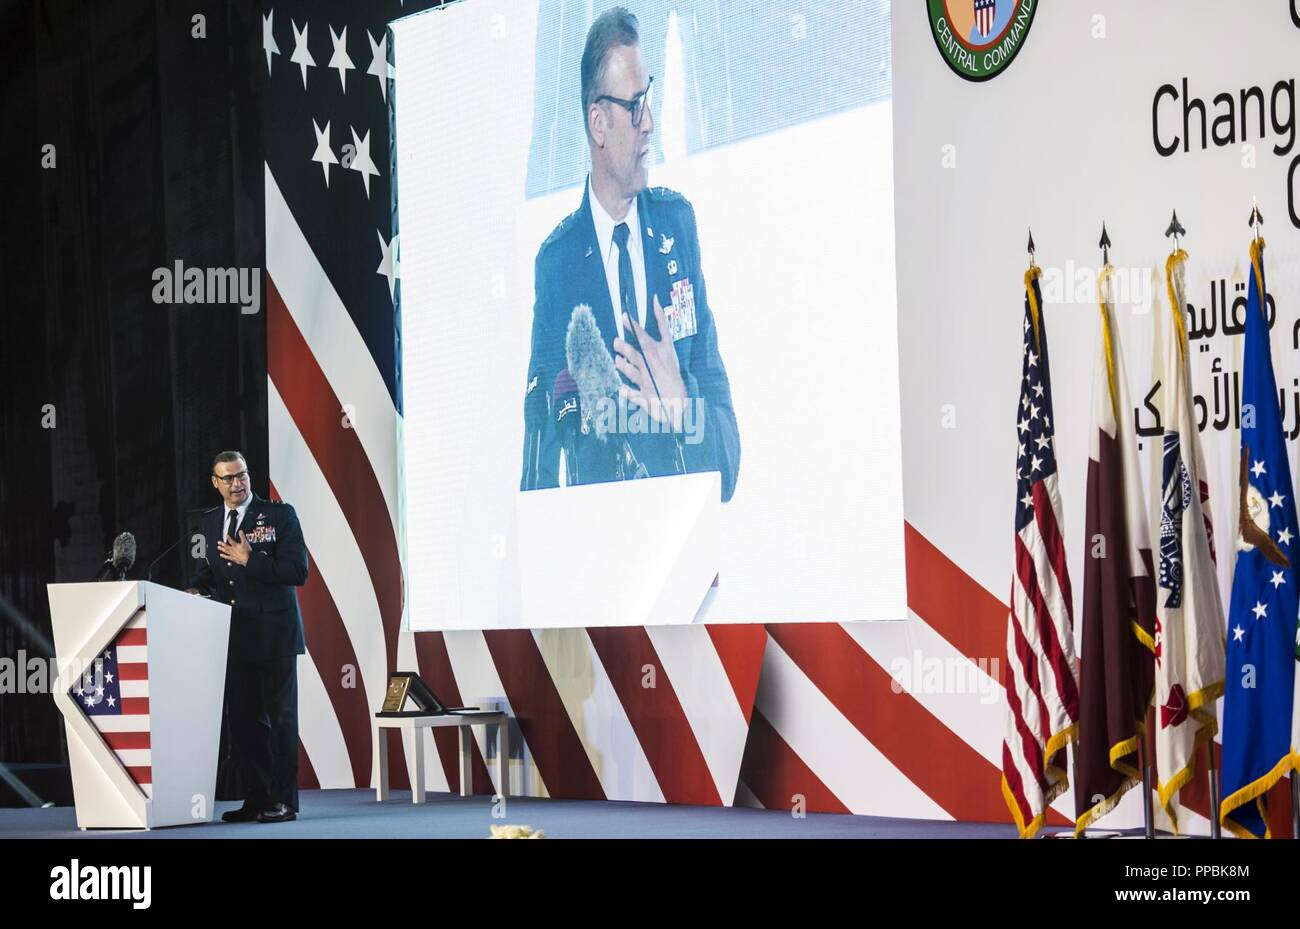 U.S. Air Force Lt. Gen. Joseph T. Guastella Jr., Commander of U.S. Air Forces Central Command (AFCENT), speaks to attendees at a change of command ceremony at Al Udeid Air Base, Qatar, Aug. 30, 2018. Guastella is a command pilot and has accumulated more than 4,000 flying hours, including 1,000 combat hours in the F-16C/D and the A-10C. AFCENT is headquarters at Shaw Air Force Base, South Carolina, and has a forward headquarters at Al Udeid Air Base Qatar. As the air component of U.S. Central Command, AFCENT is responsible for air operations, either unilaterally or in concert with coalition par - Stock Image